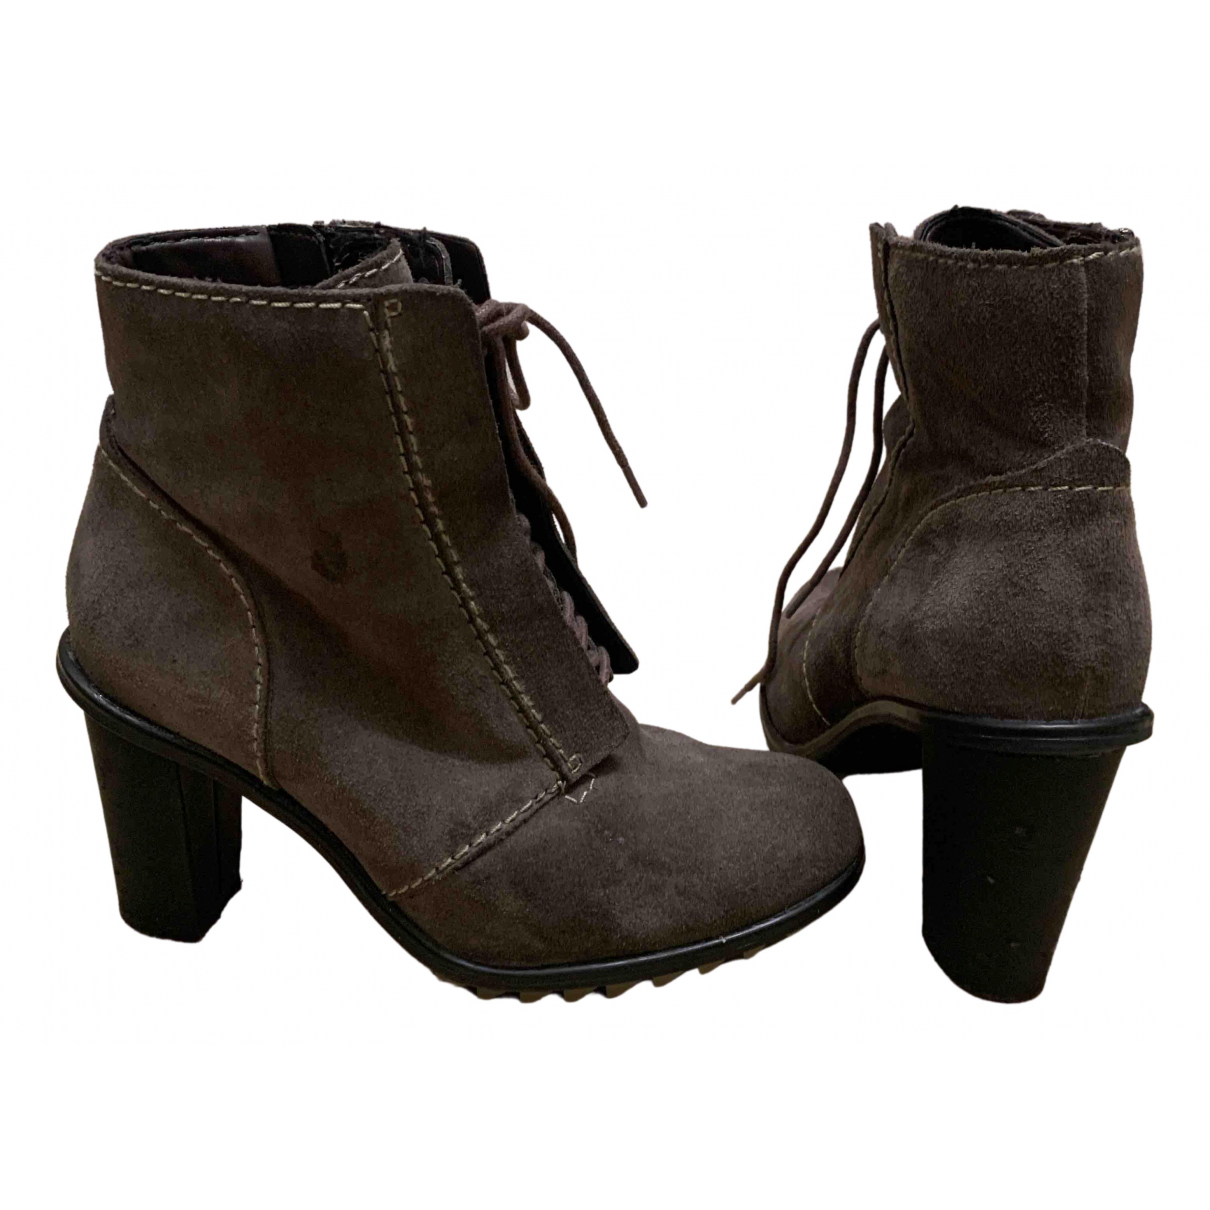 Clarks N Brown Suede Boots for Women 4 UK